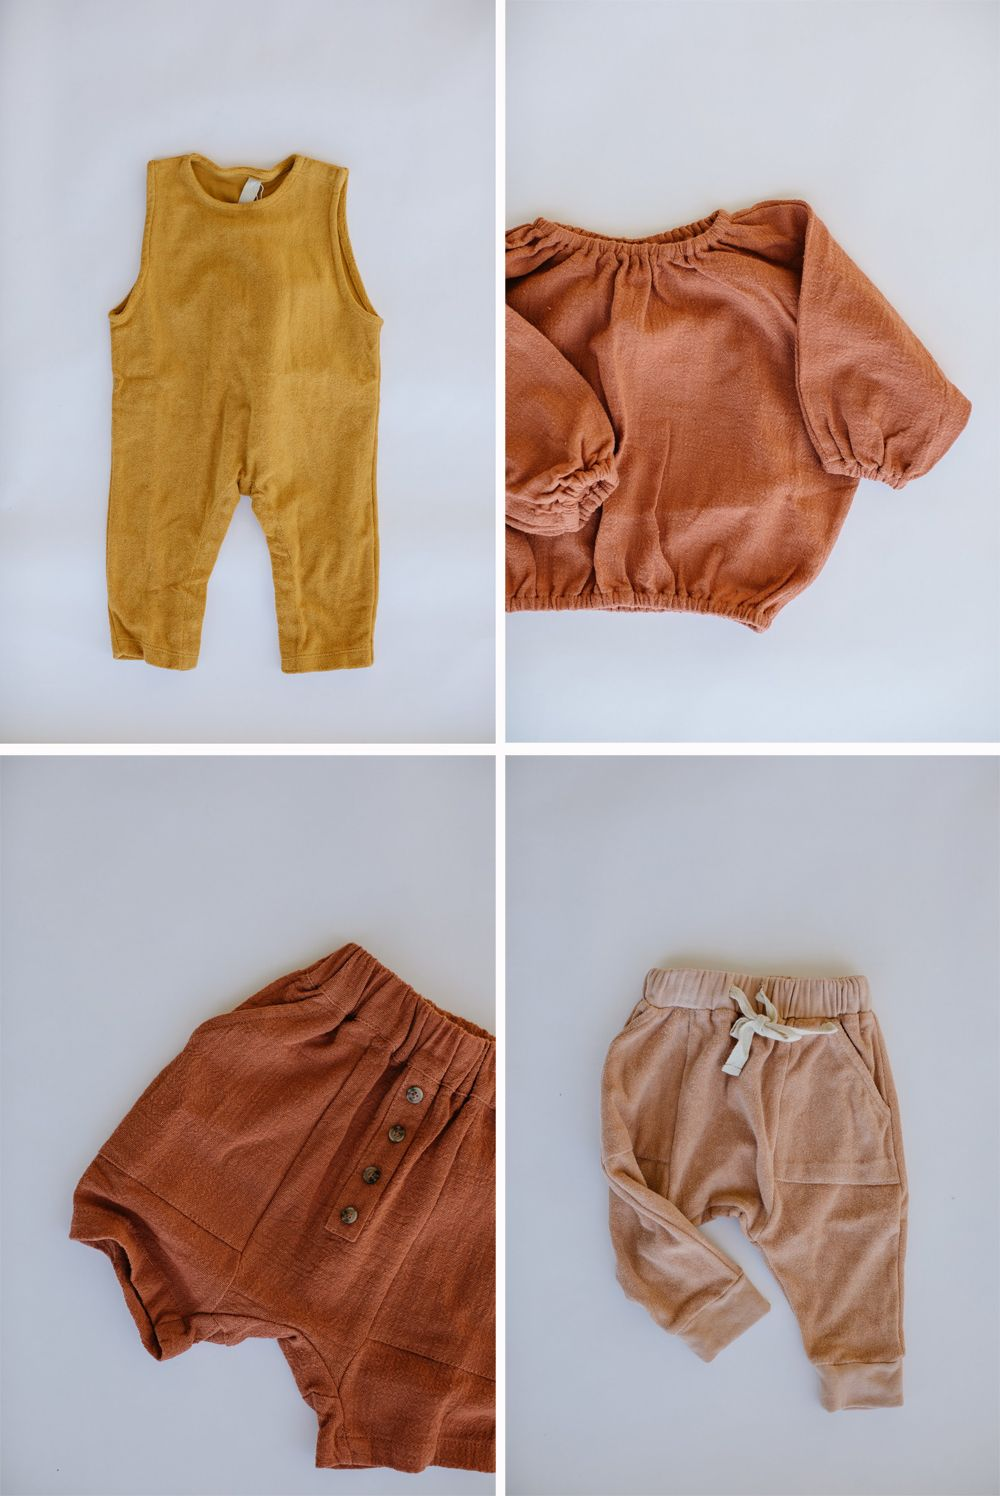 millk a laid back baby clothing brand from byron bay gender